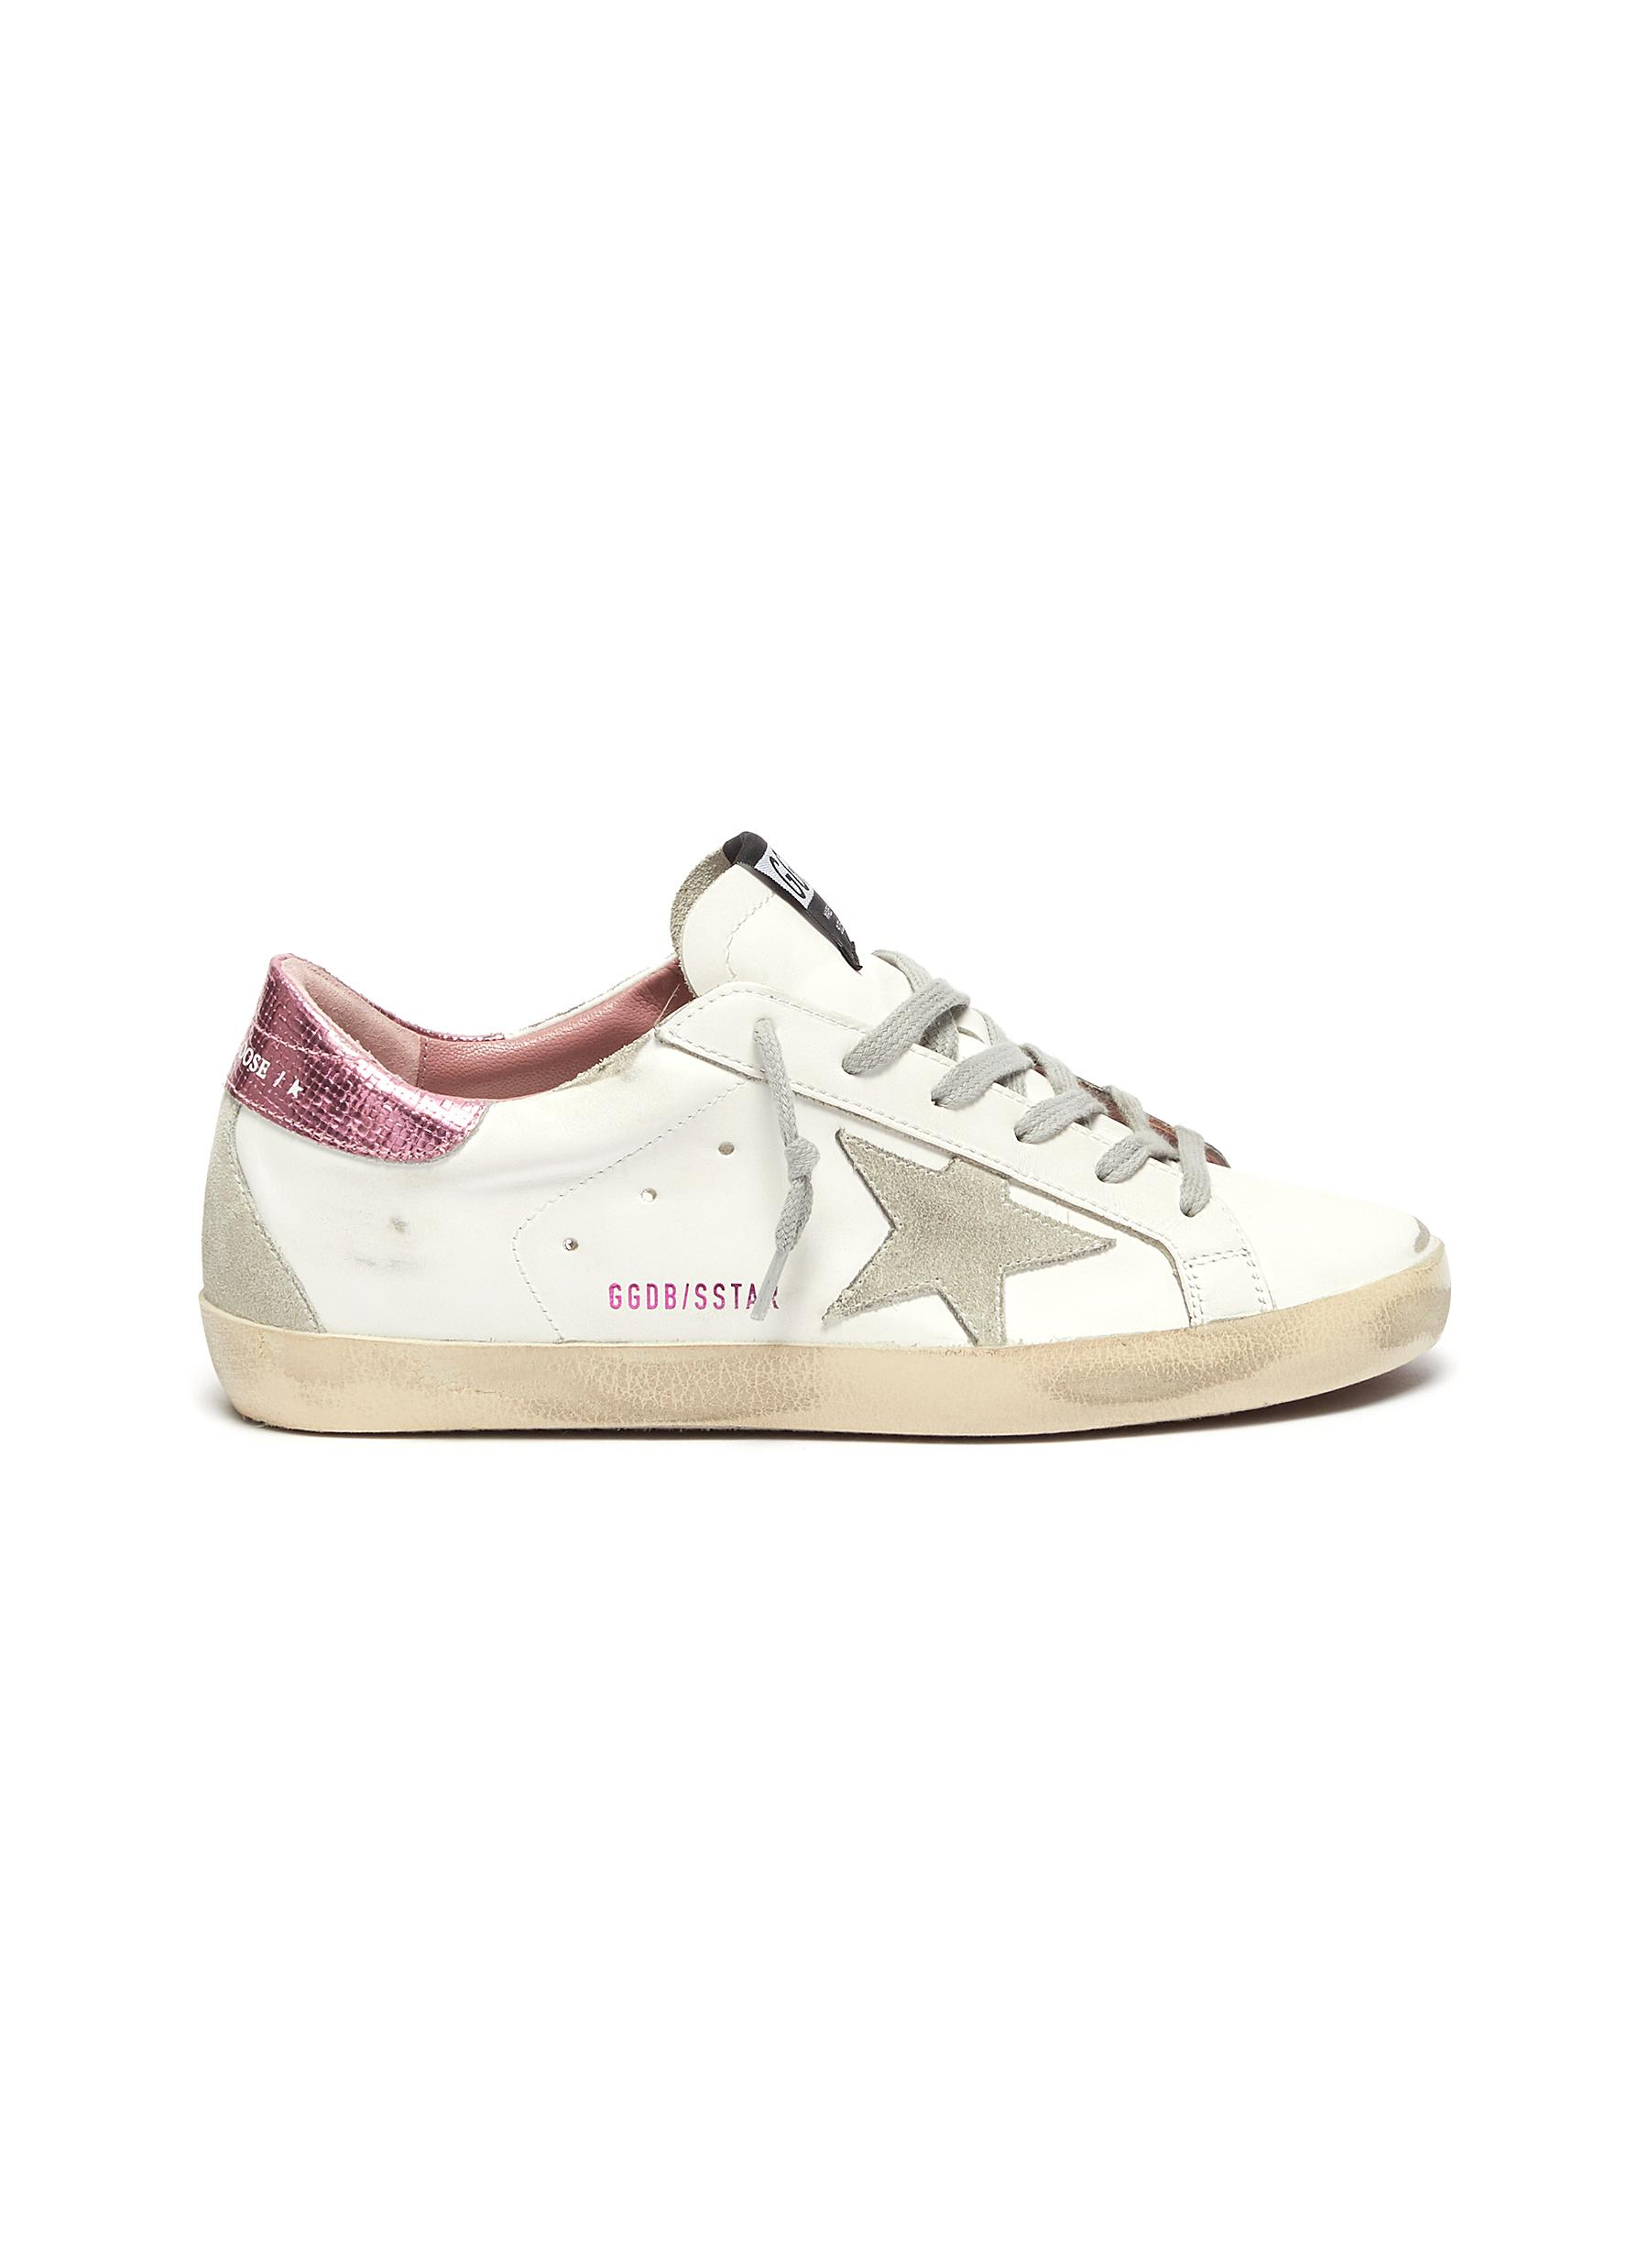 'Super-Star' Laminated Heel Tab Distressed Leather Sneakers